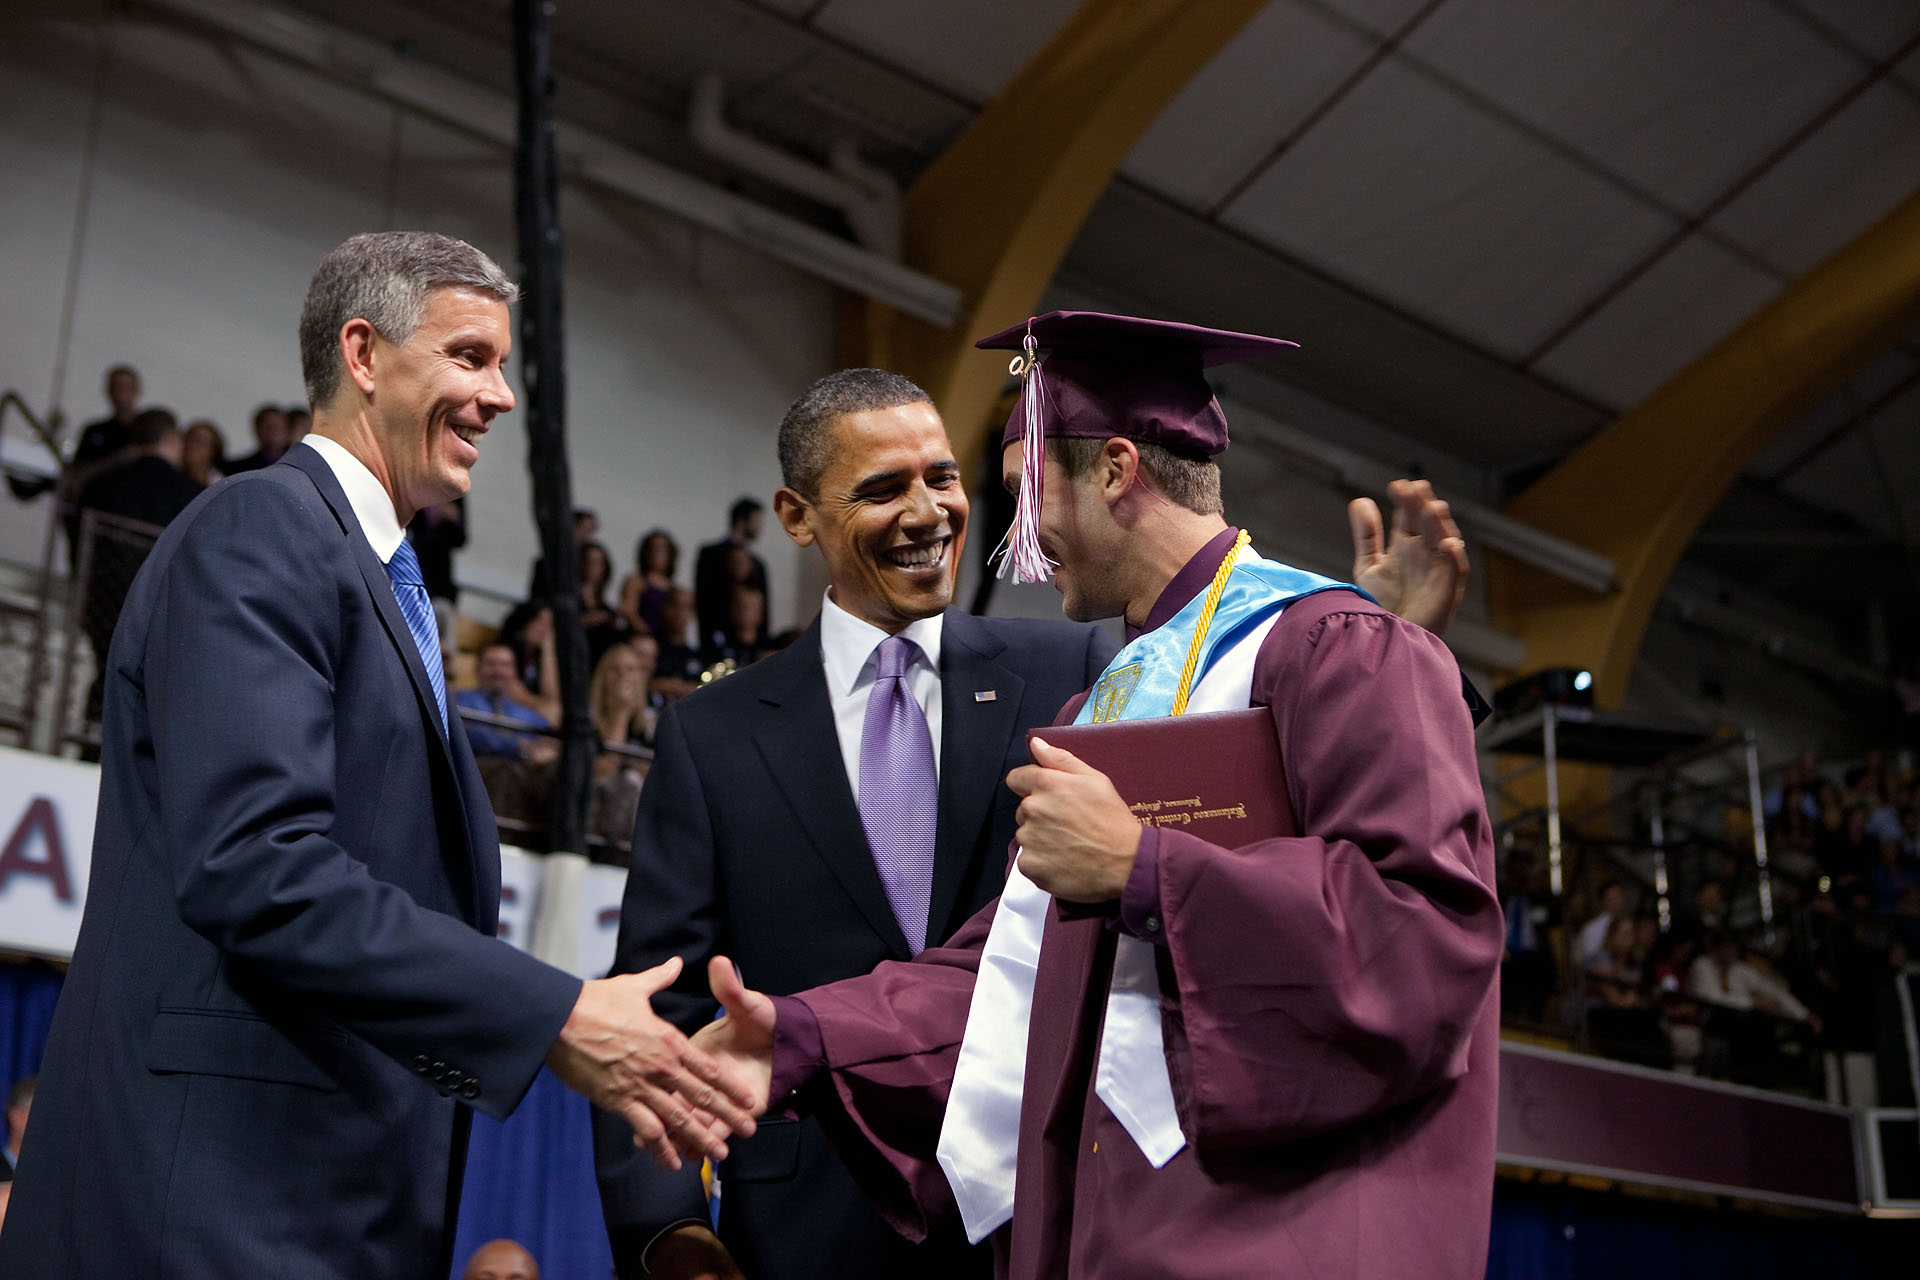 President Obama, Secretary Duncan and student at Kalamazoo Central